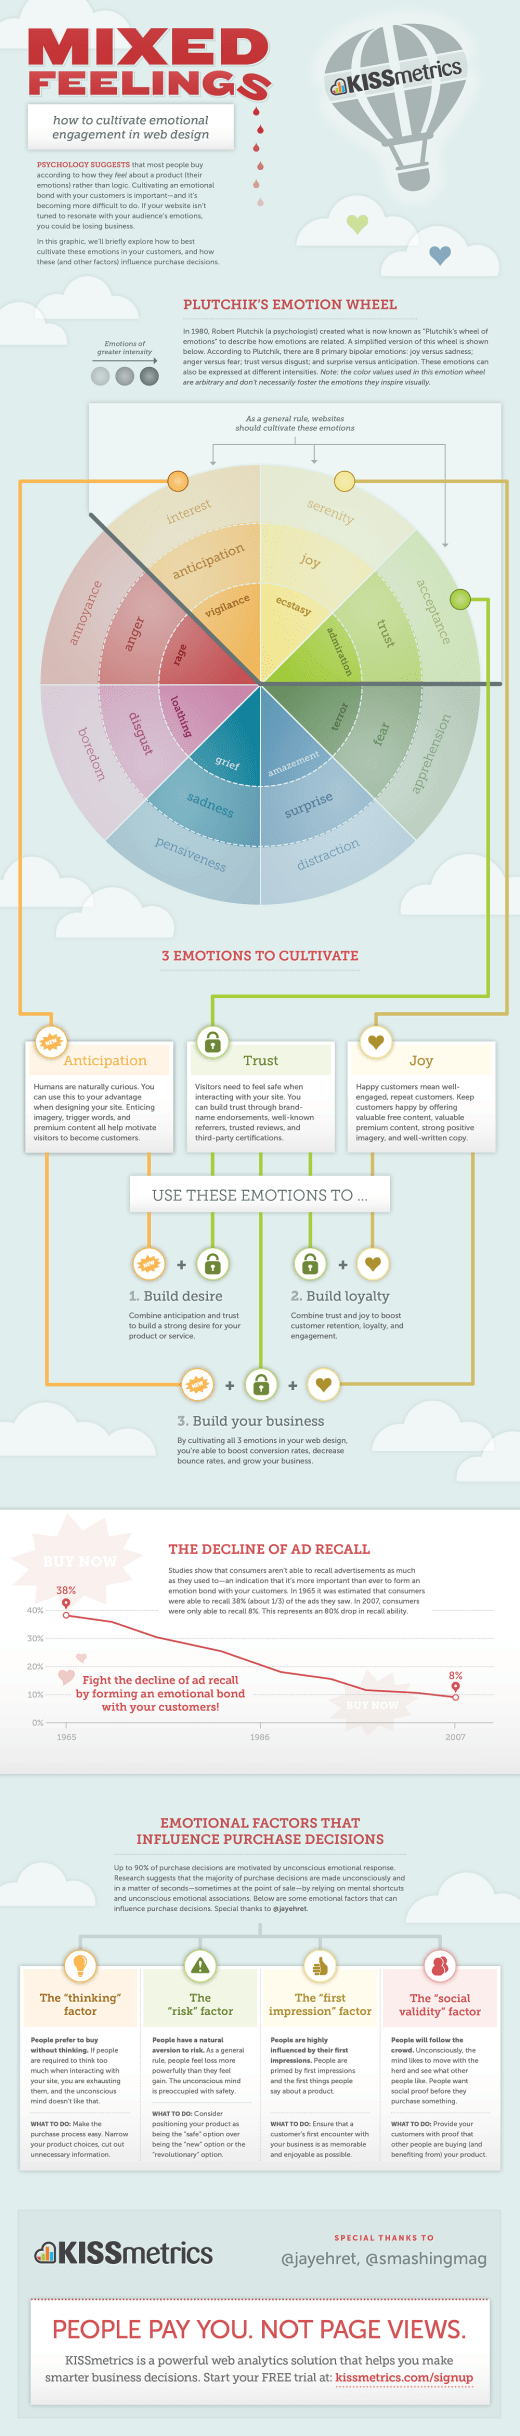 Mixed Feelings in Webdesign [Infographic]